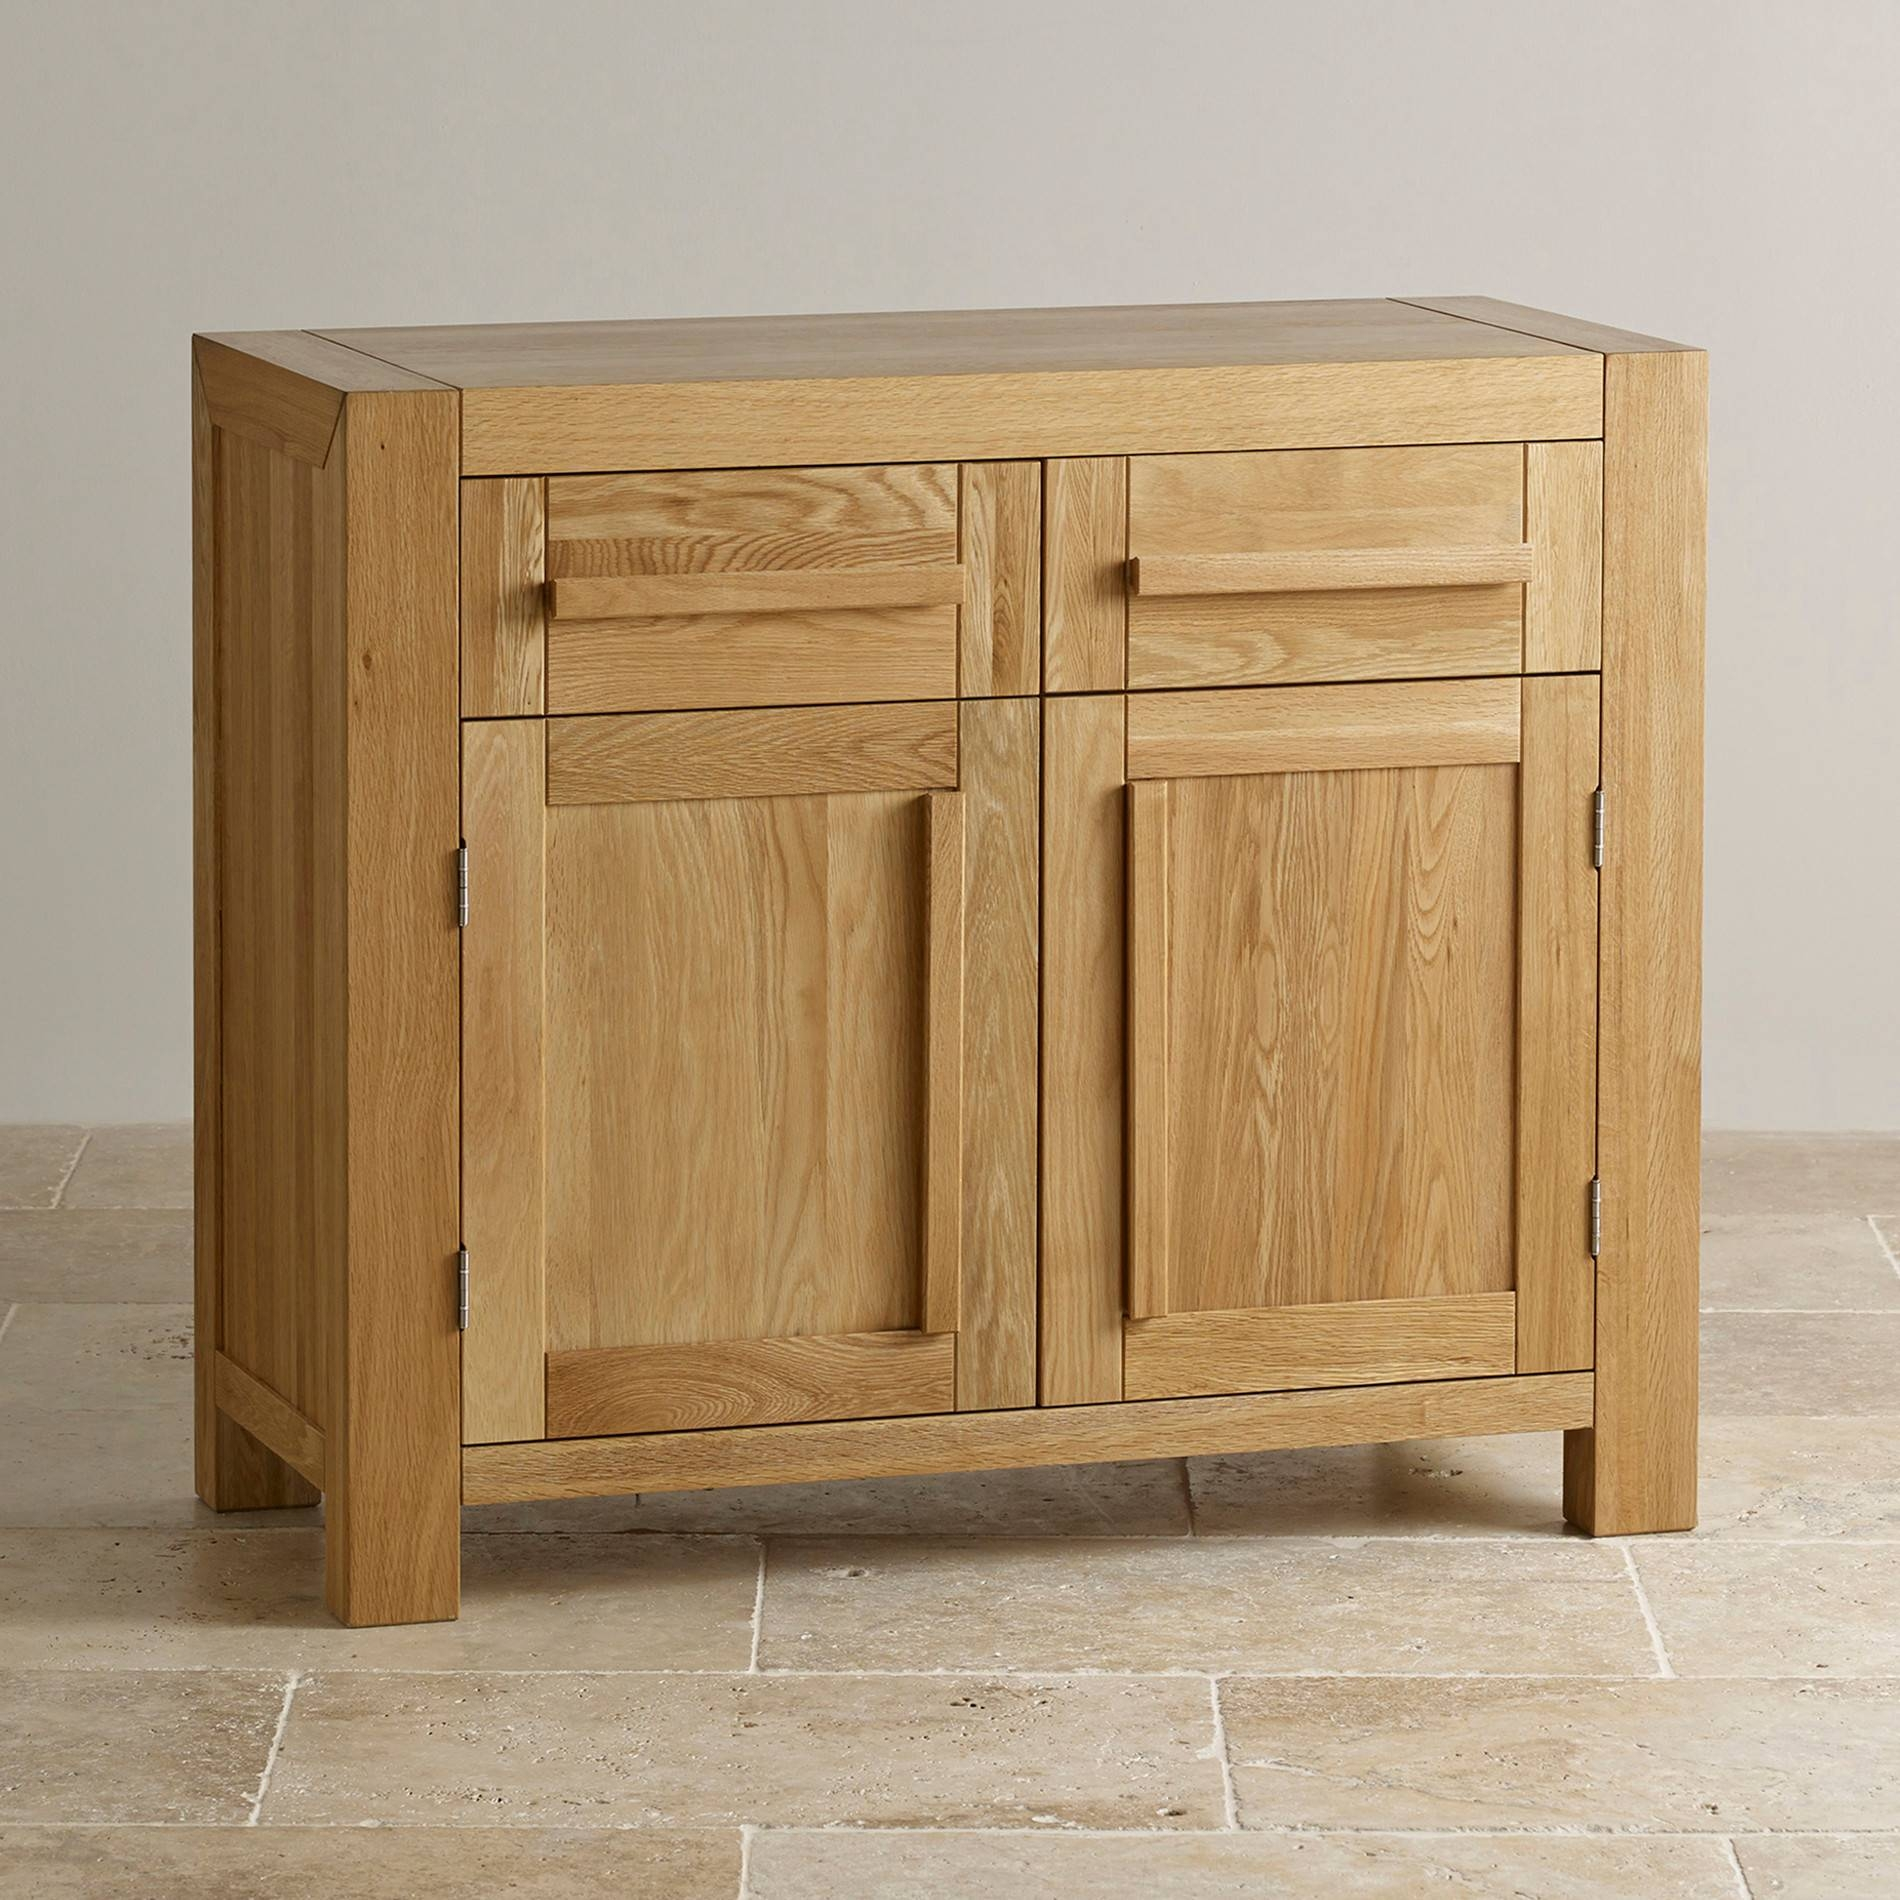 The Fresco Range – Natural Solid Oak Furniture With Regard To Oak Sideboards For Sale (View 28 of 30)